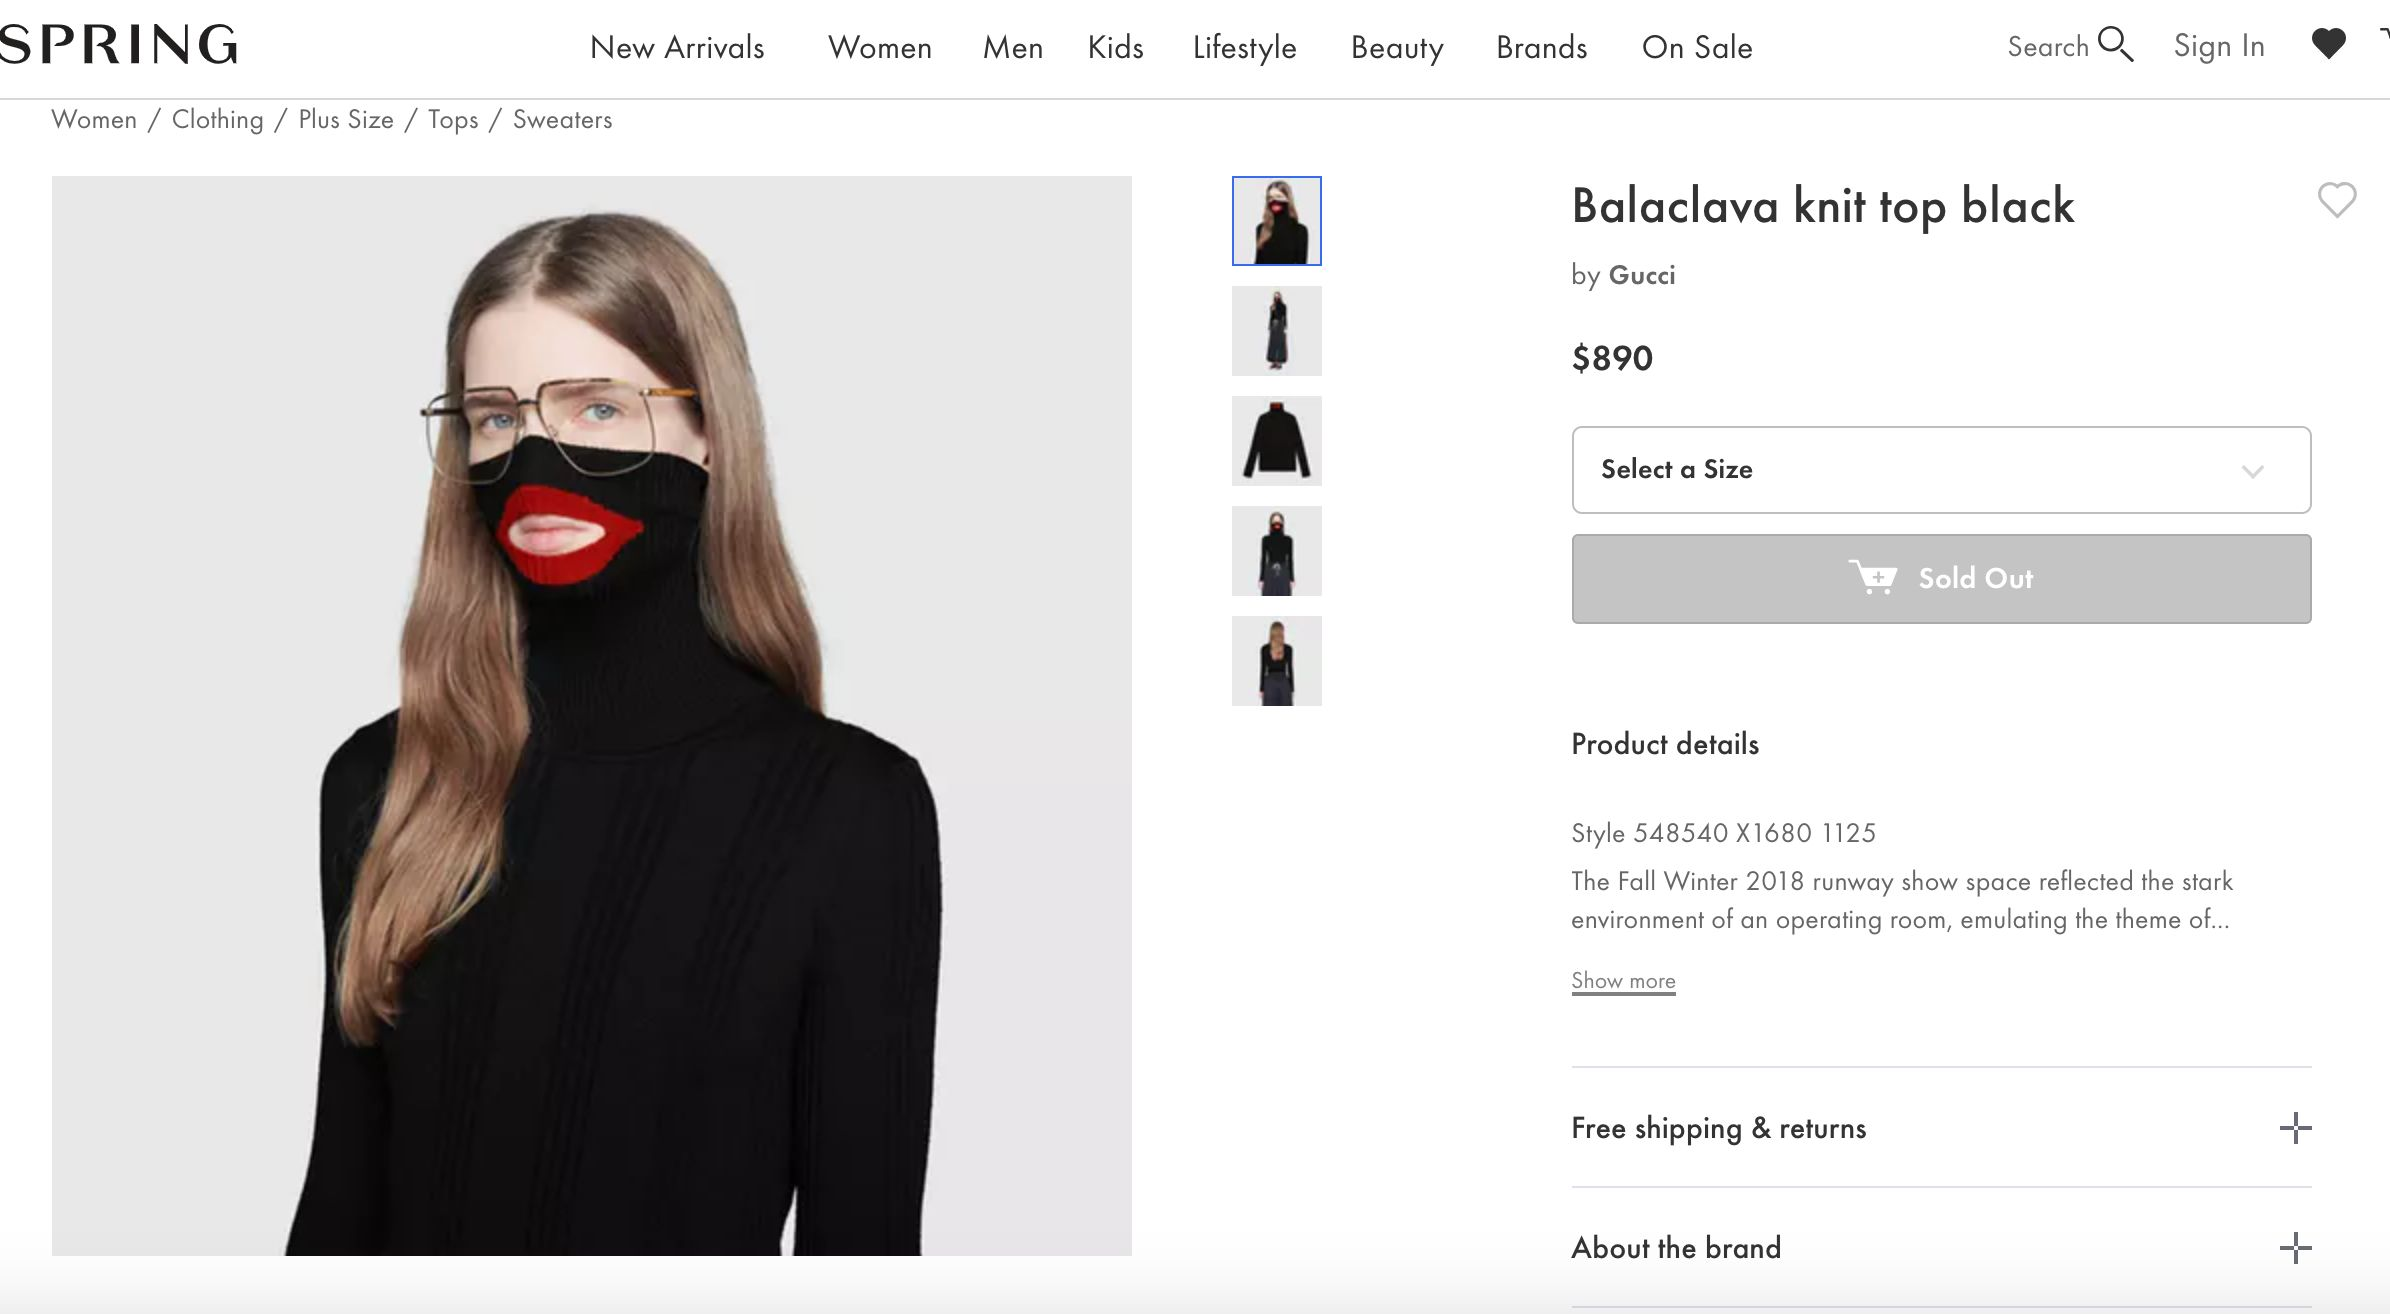 Gucci Apologizes For Black Balaclava Sweater That Resembles Blackface